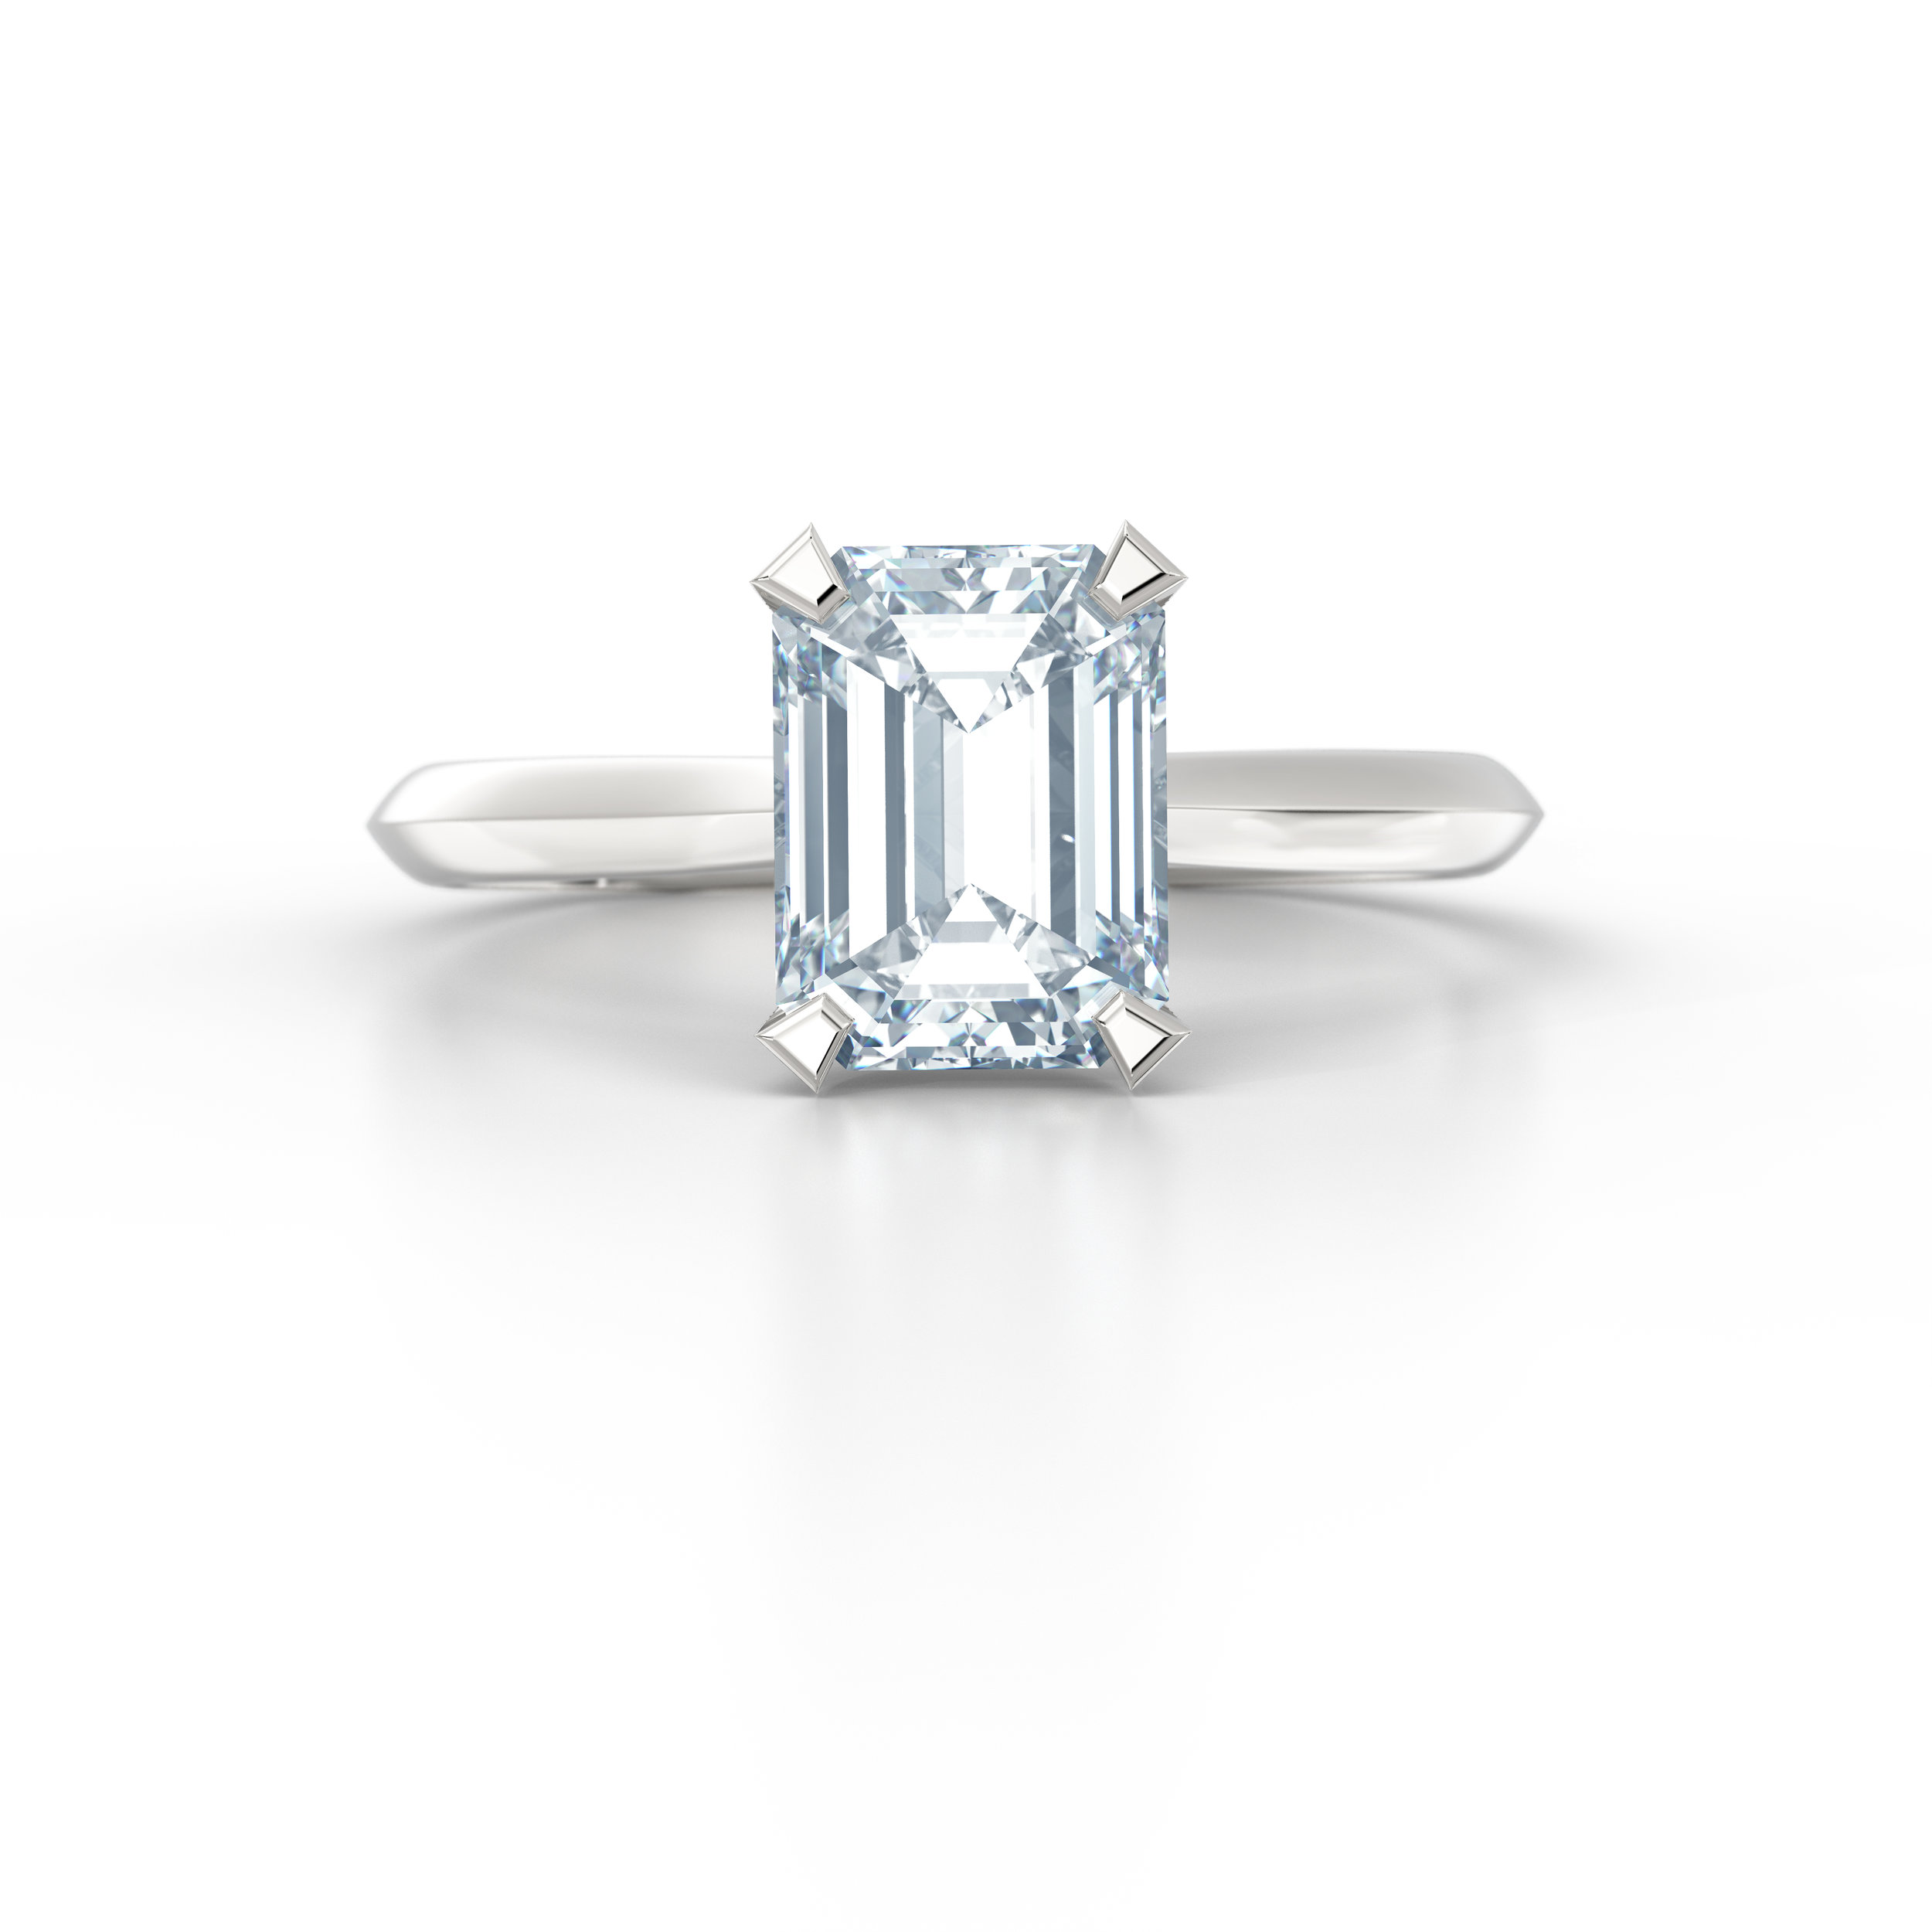 Emerald Cut Solitaire Engagement Ring | Hatton Garden